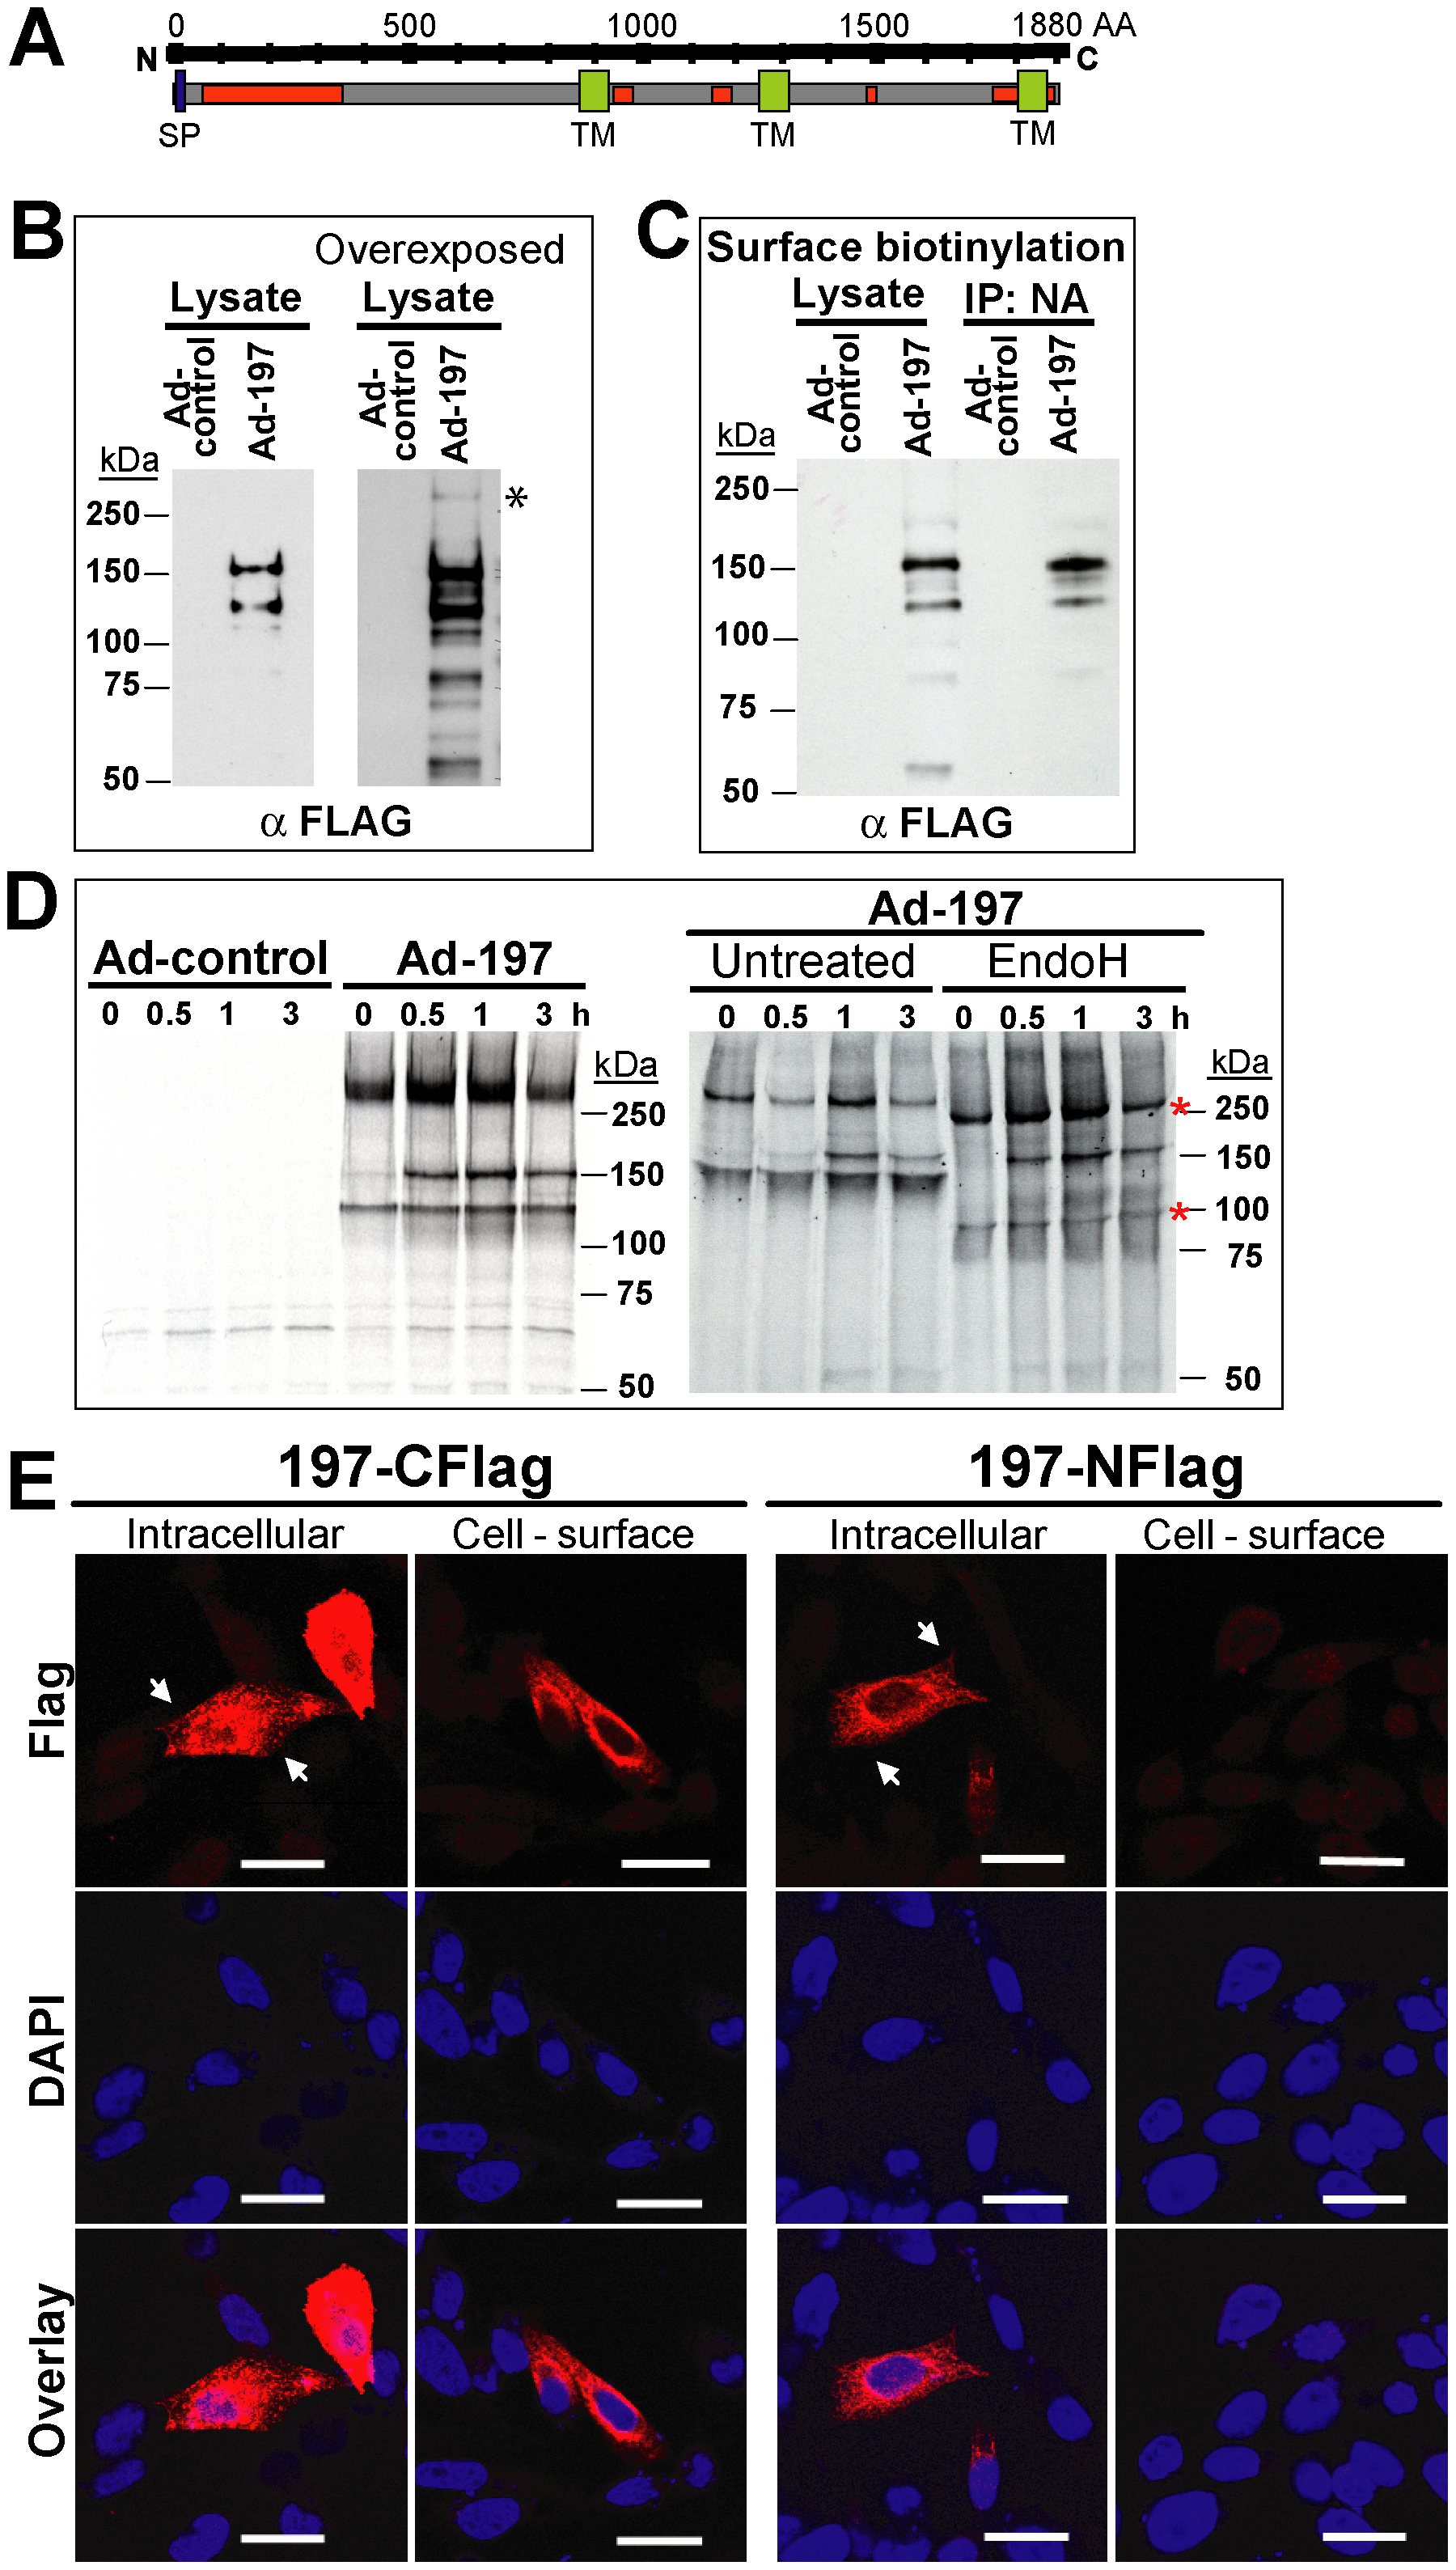 Molecular characterization and sub-cellular localization of MPXV197.